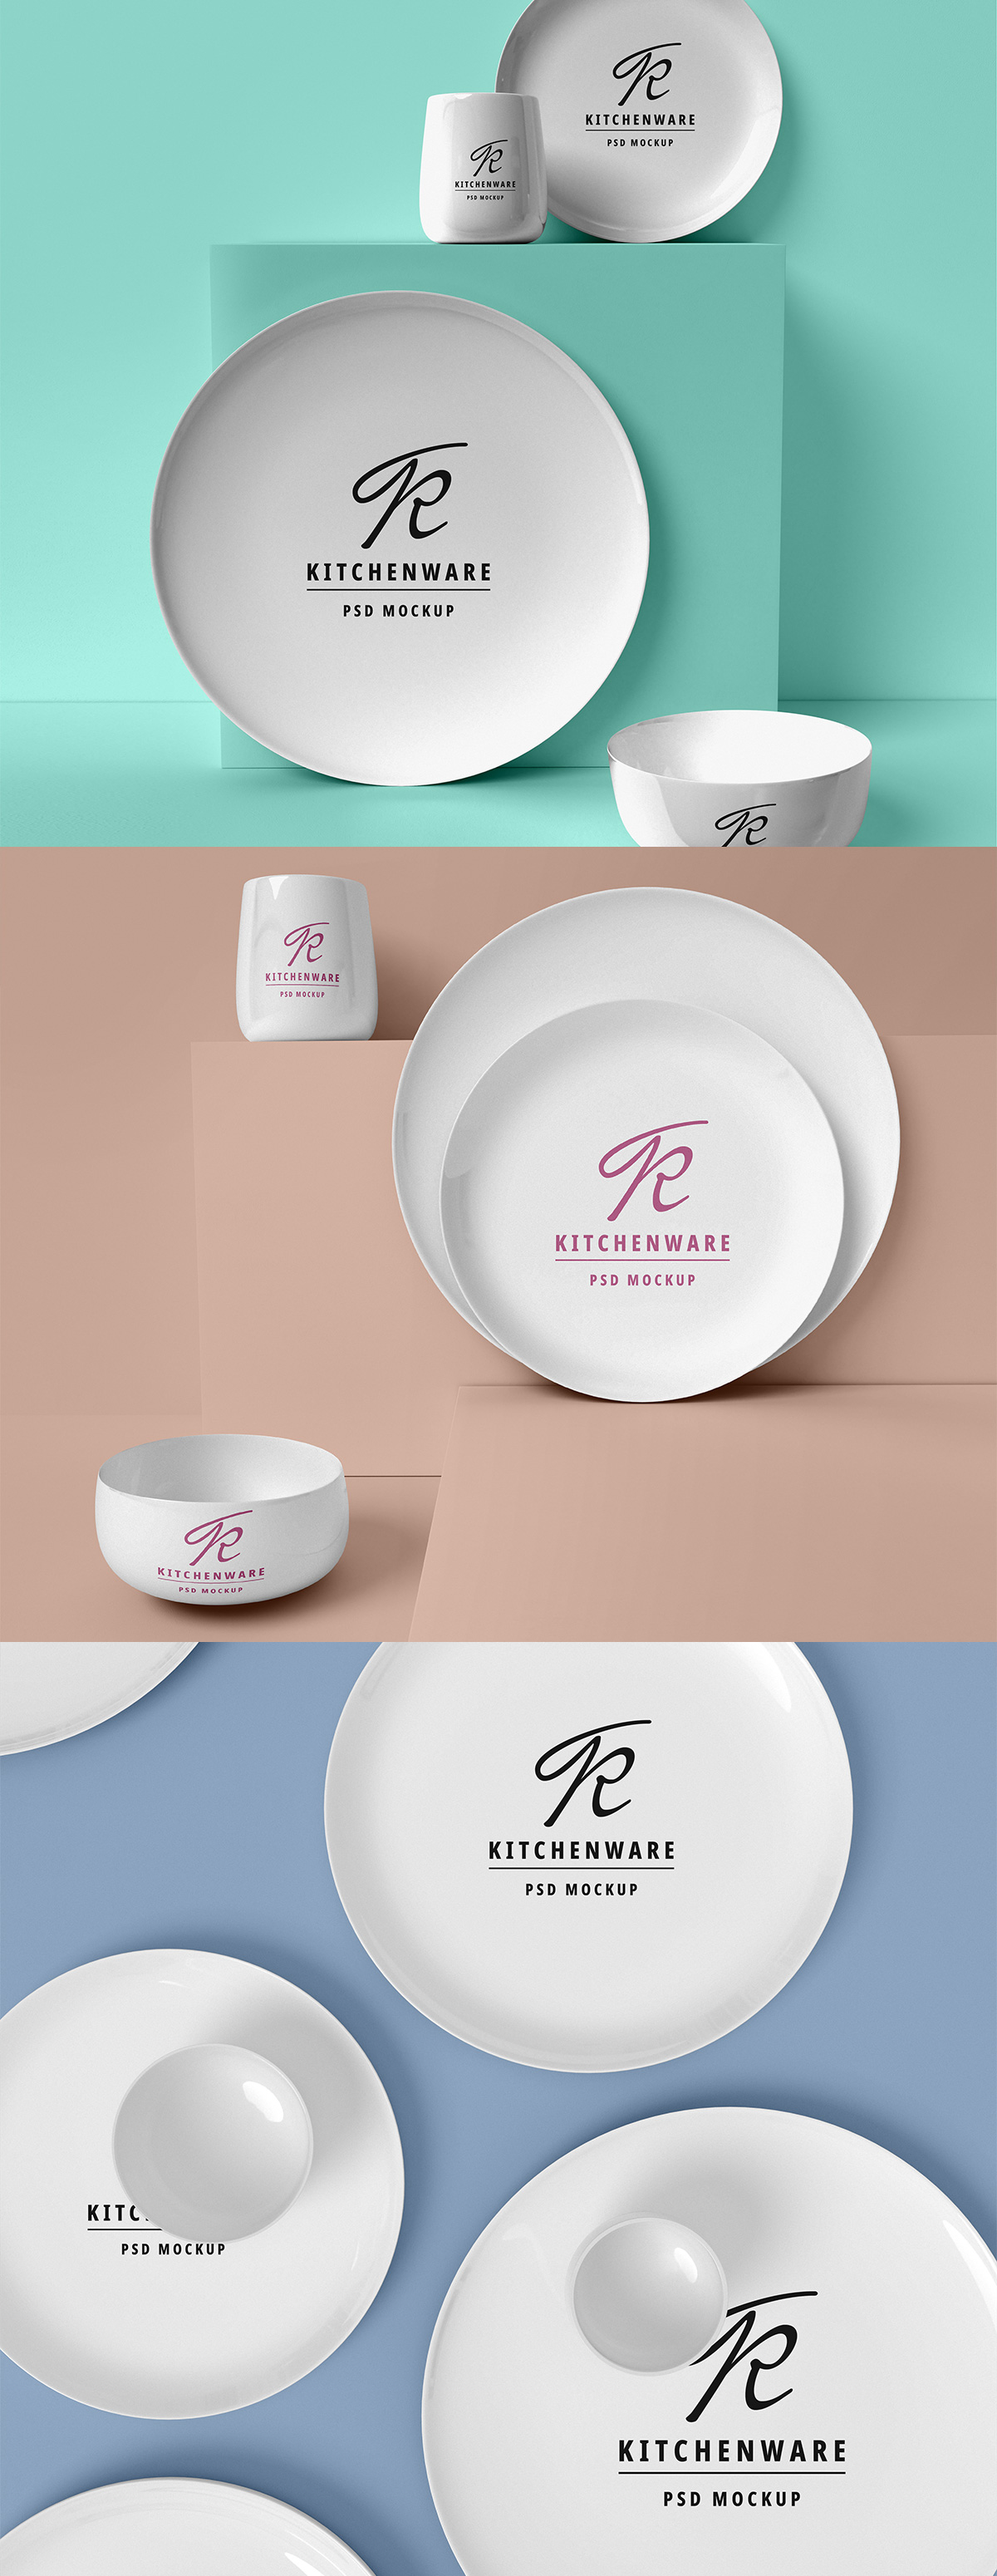 Kitchen Utensils PSD Mockup